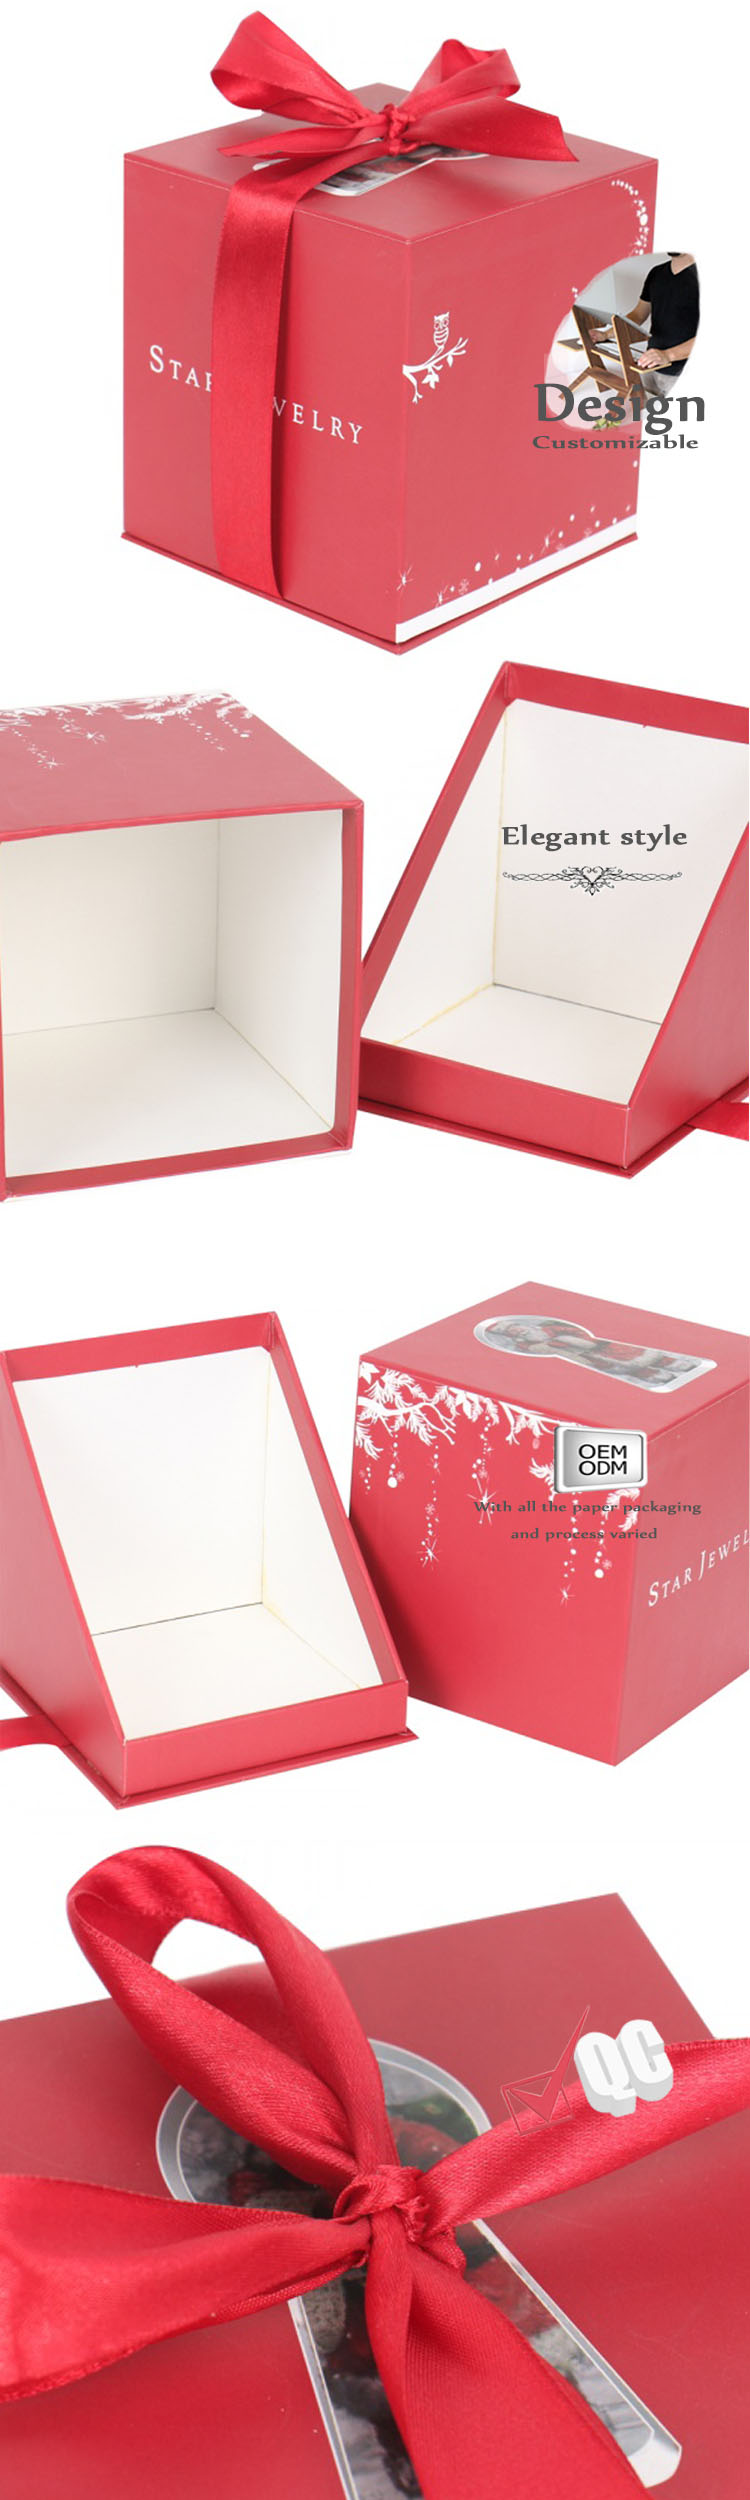 Christmas gift boxes with row